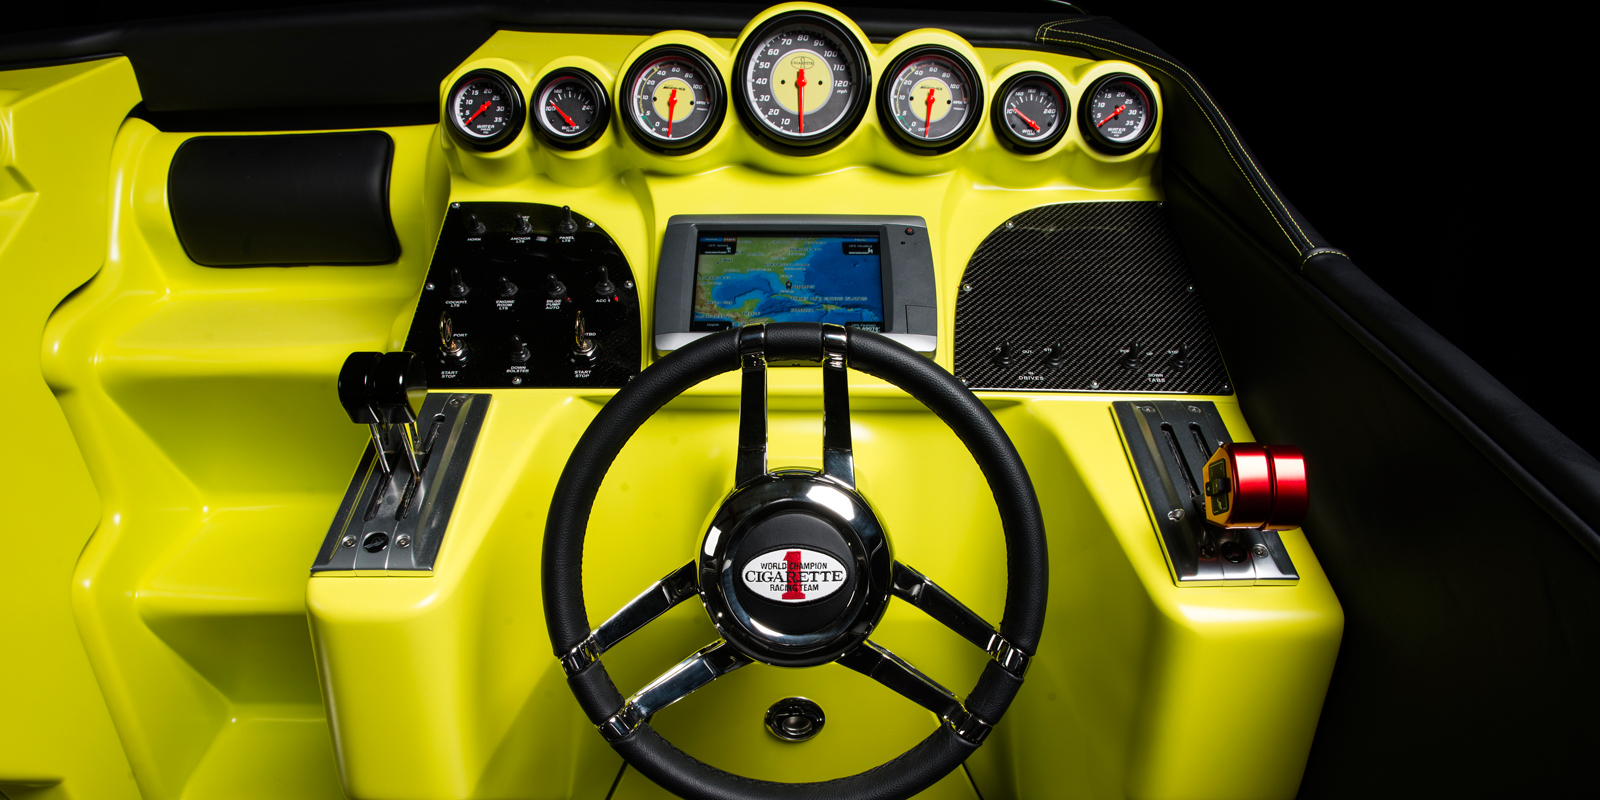 SLS AMG Coupe Electric Drive Cigarette Boat steering wheel